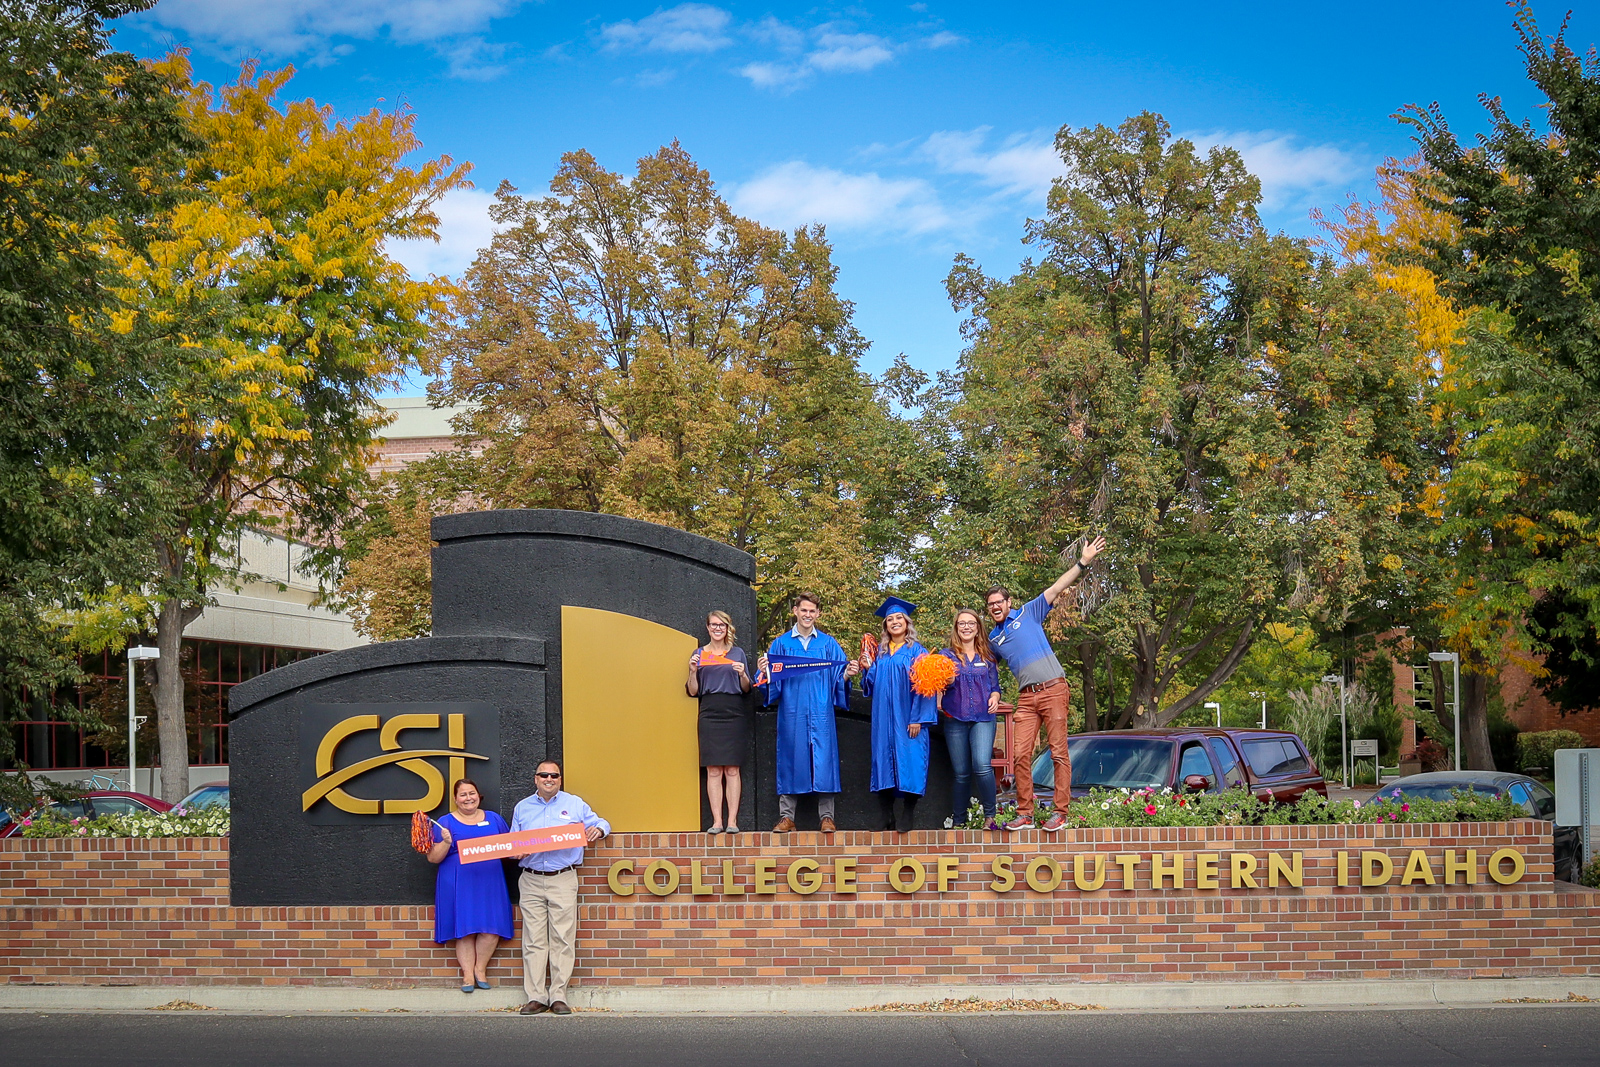 Boise State Center at the College of Southern Idaho (CSI)